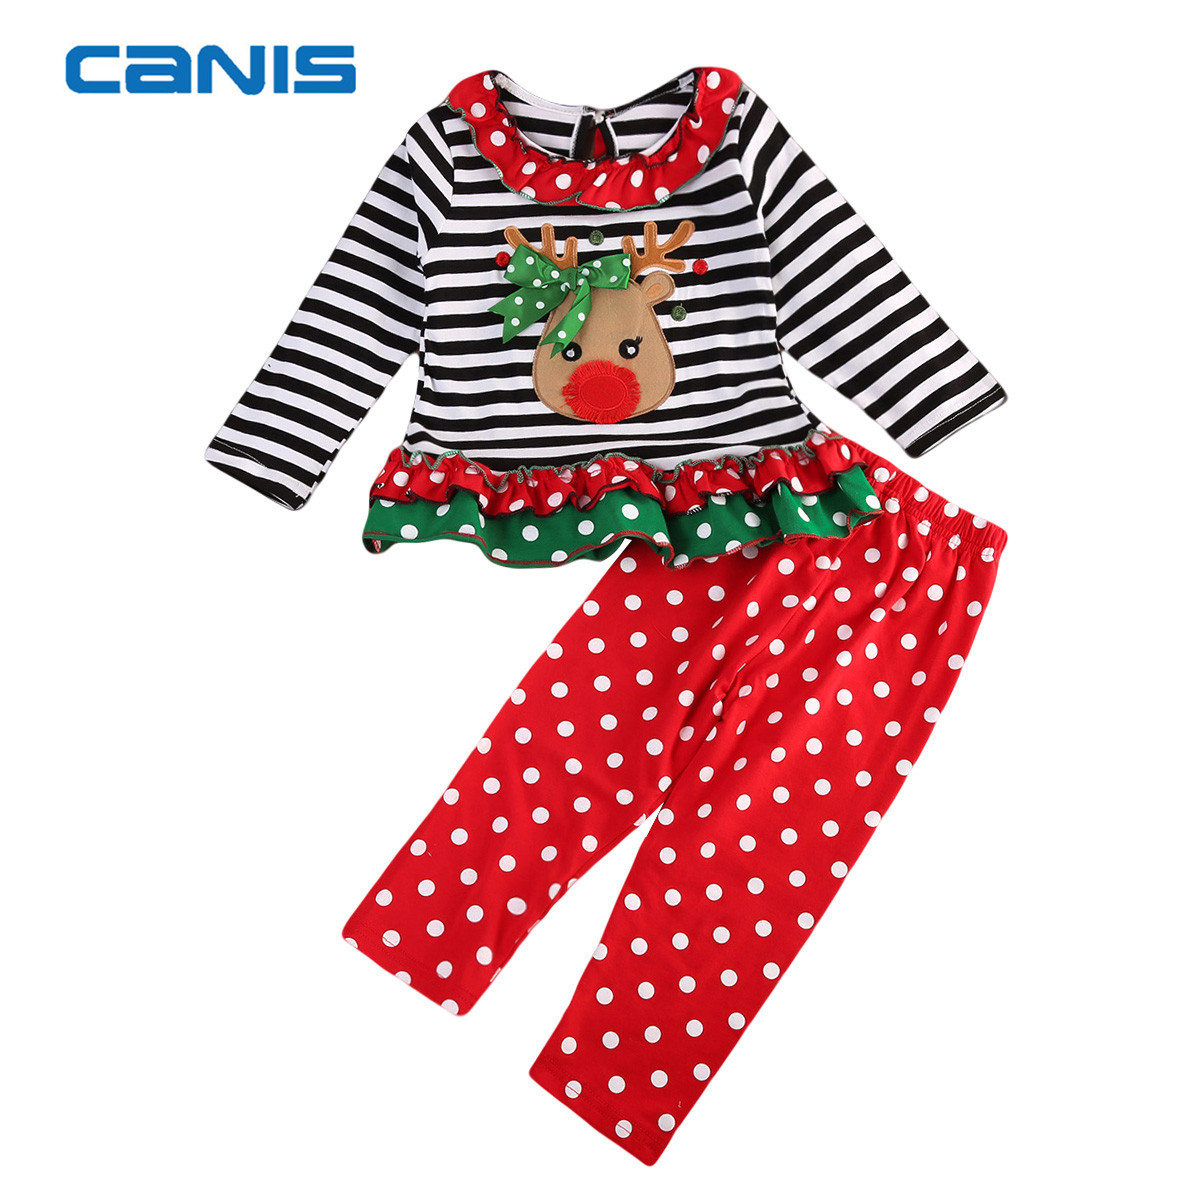 2017 Brand New Toddler Infant Child Kids Baby Girls Christmas Long Sleeve Tops Pants 2Pcs Santa Sets Adorable Outfits 0-5T микрофон пушка zoom sgh6 для zoom h5 h6